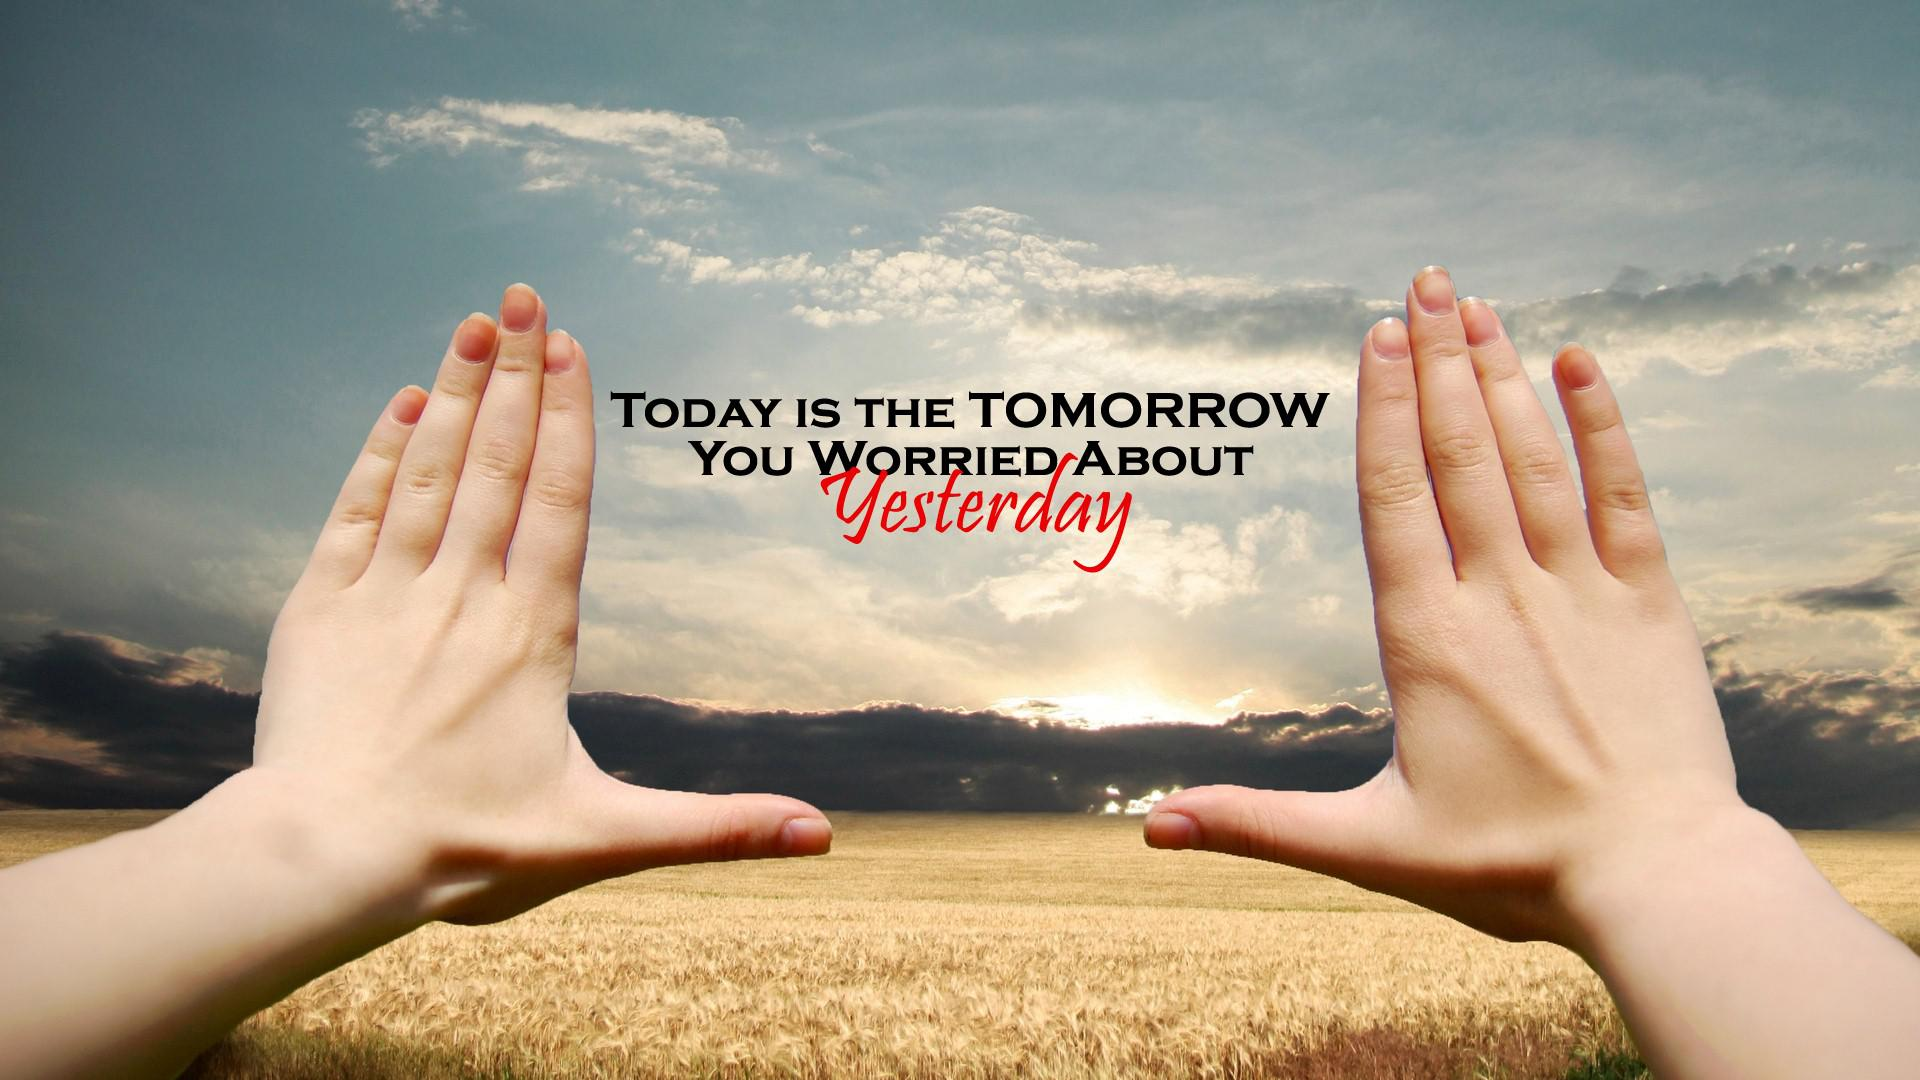 Hd Today Tomorrow And Yesterday Beautiful Inspiring - Beautiful Hd Images With Quotes - HD Wallpaper